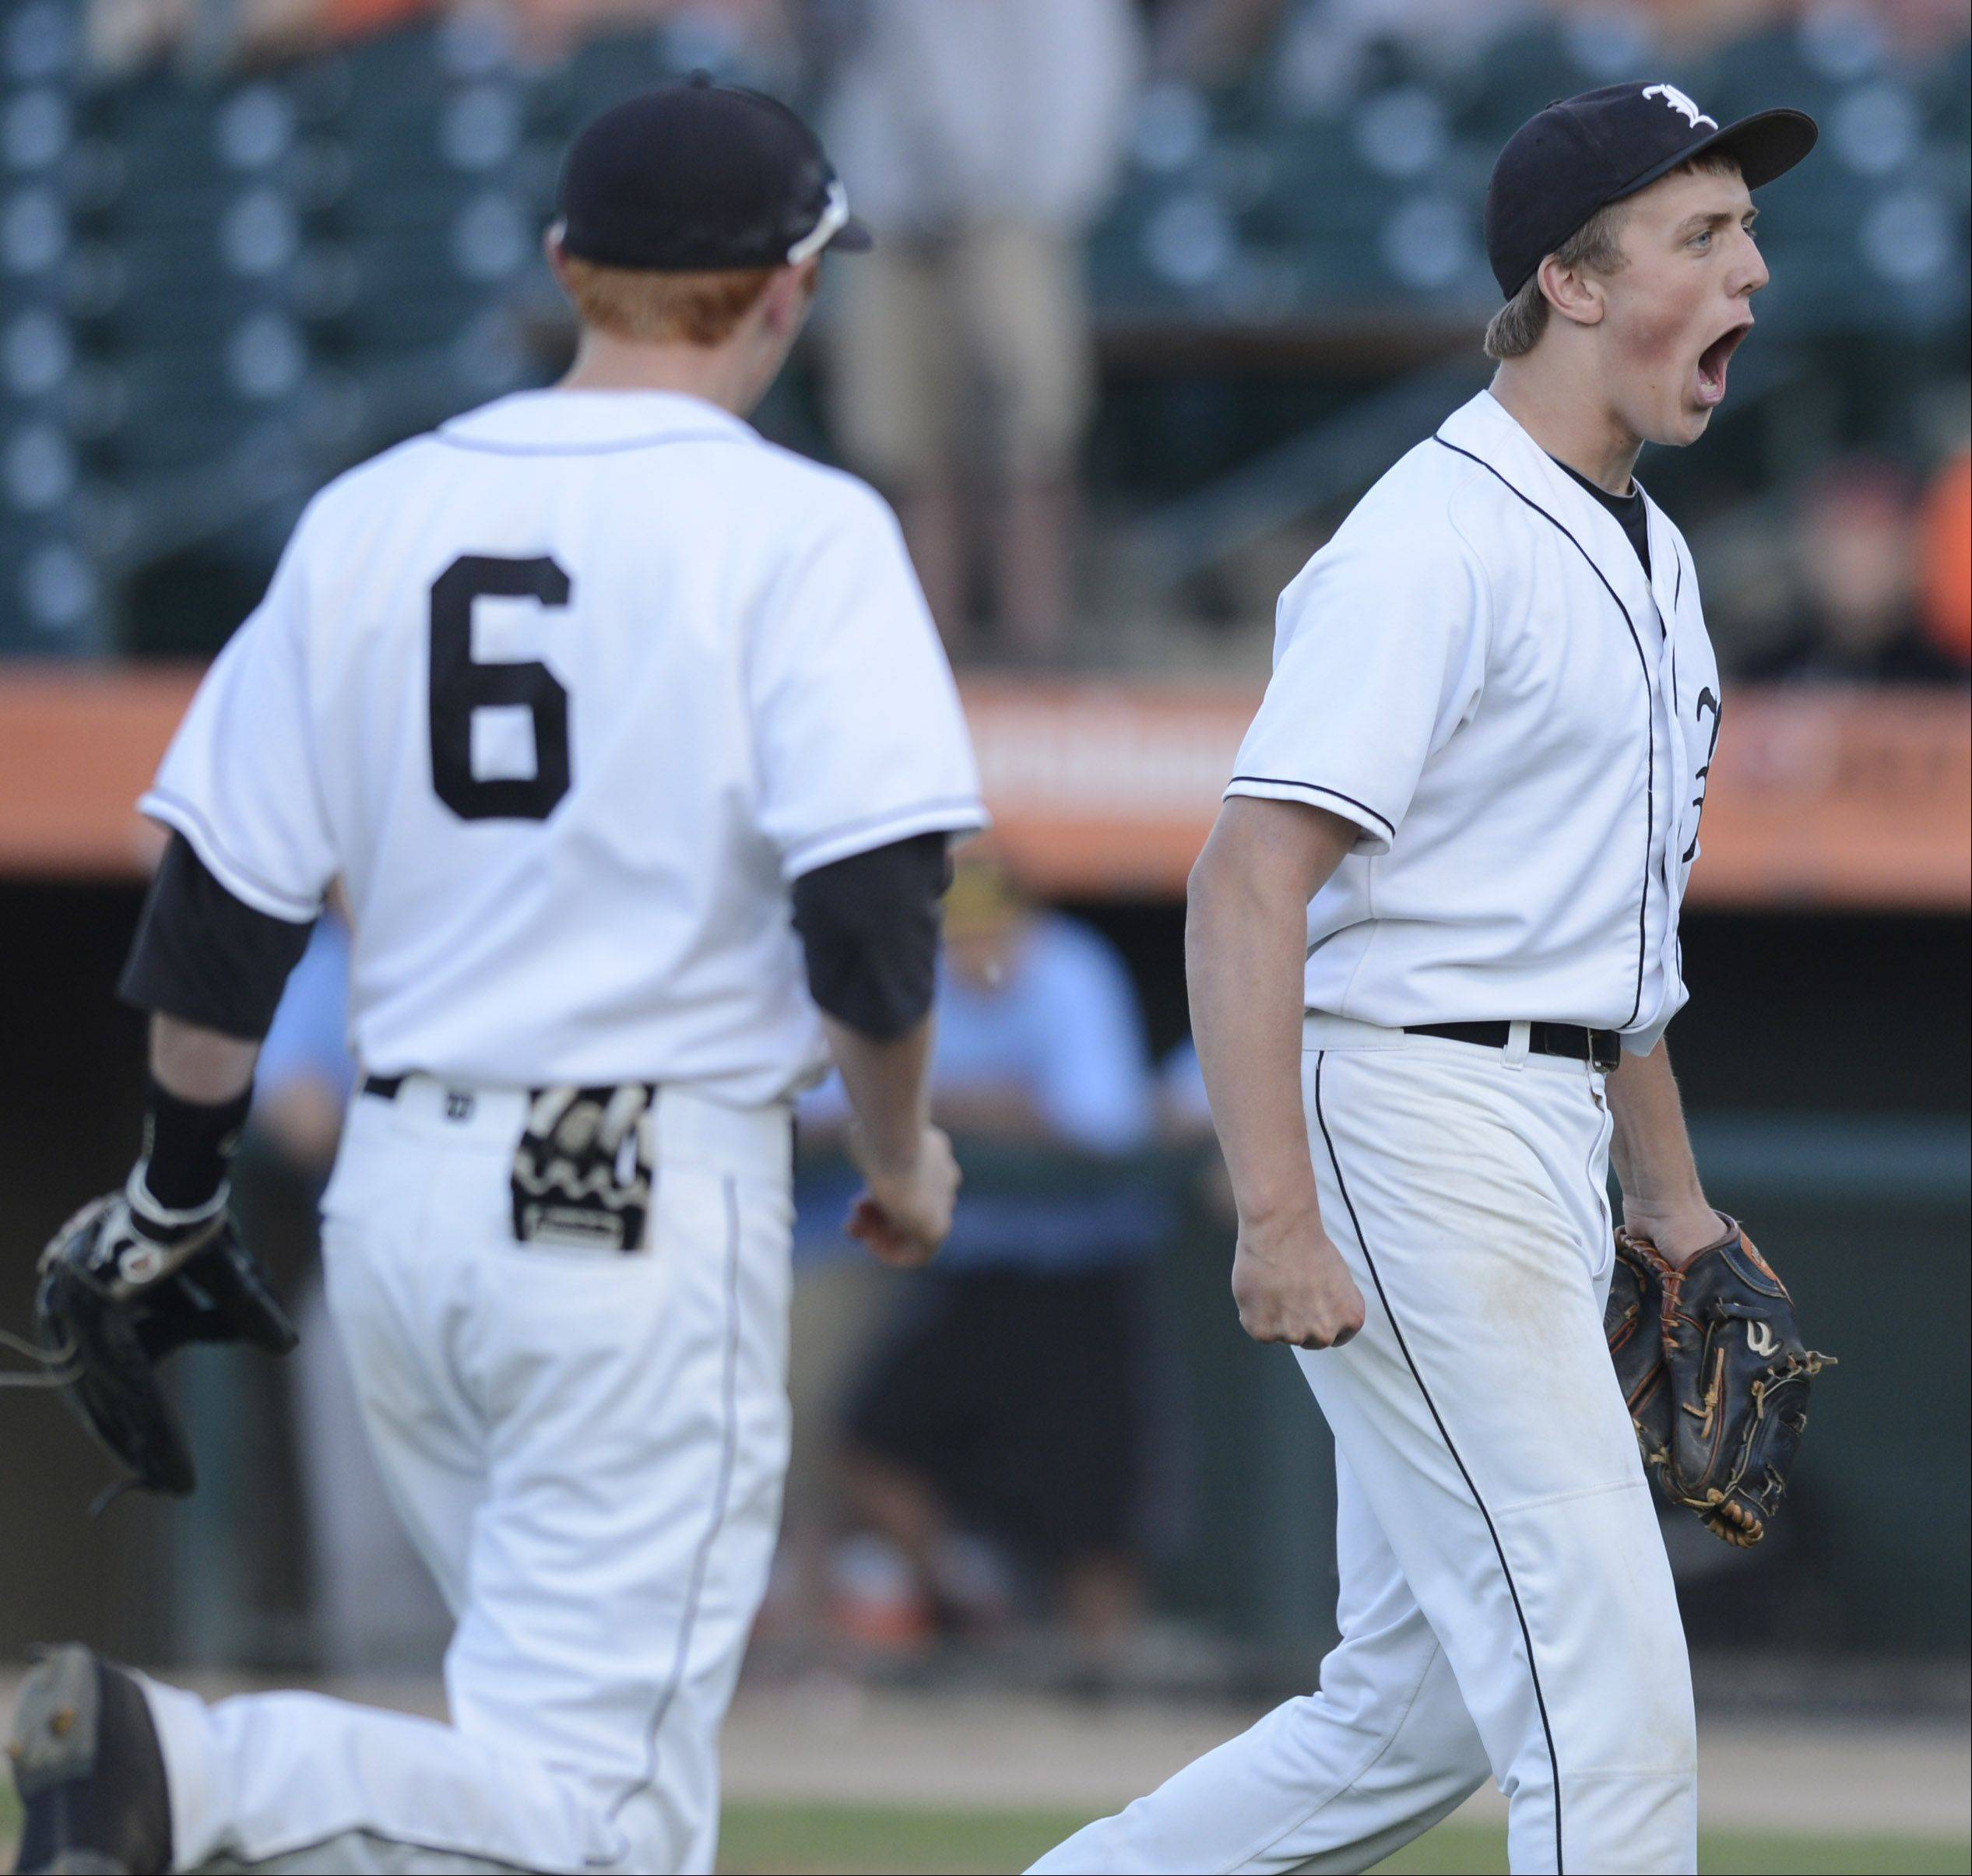 Libertyville pitcher Kevin Calamari celebrates after closing his team's 9-6 victory over St. Charles East during the Class 4A state baseball semifinals at Silver Cross Field in Joliet Friday as teammate P.J. Neumann runs over to congratulate him.